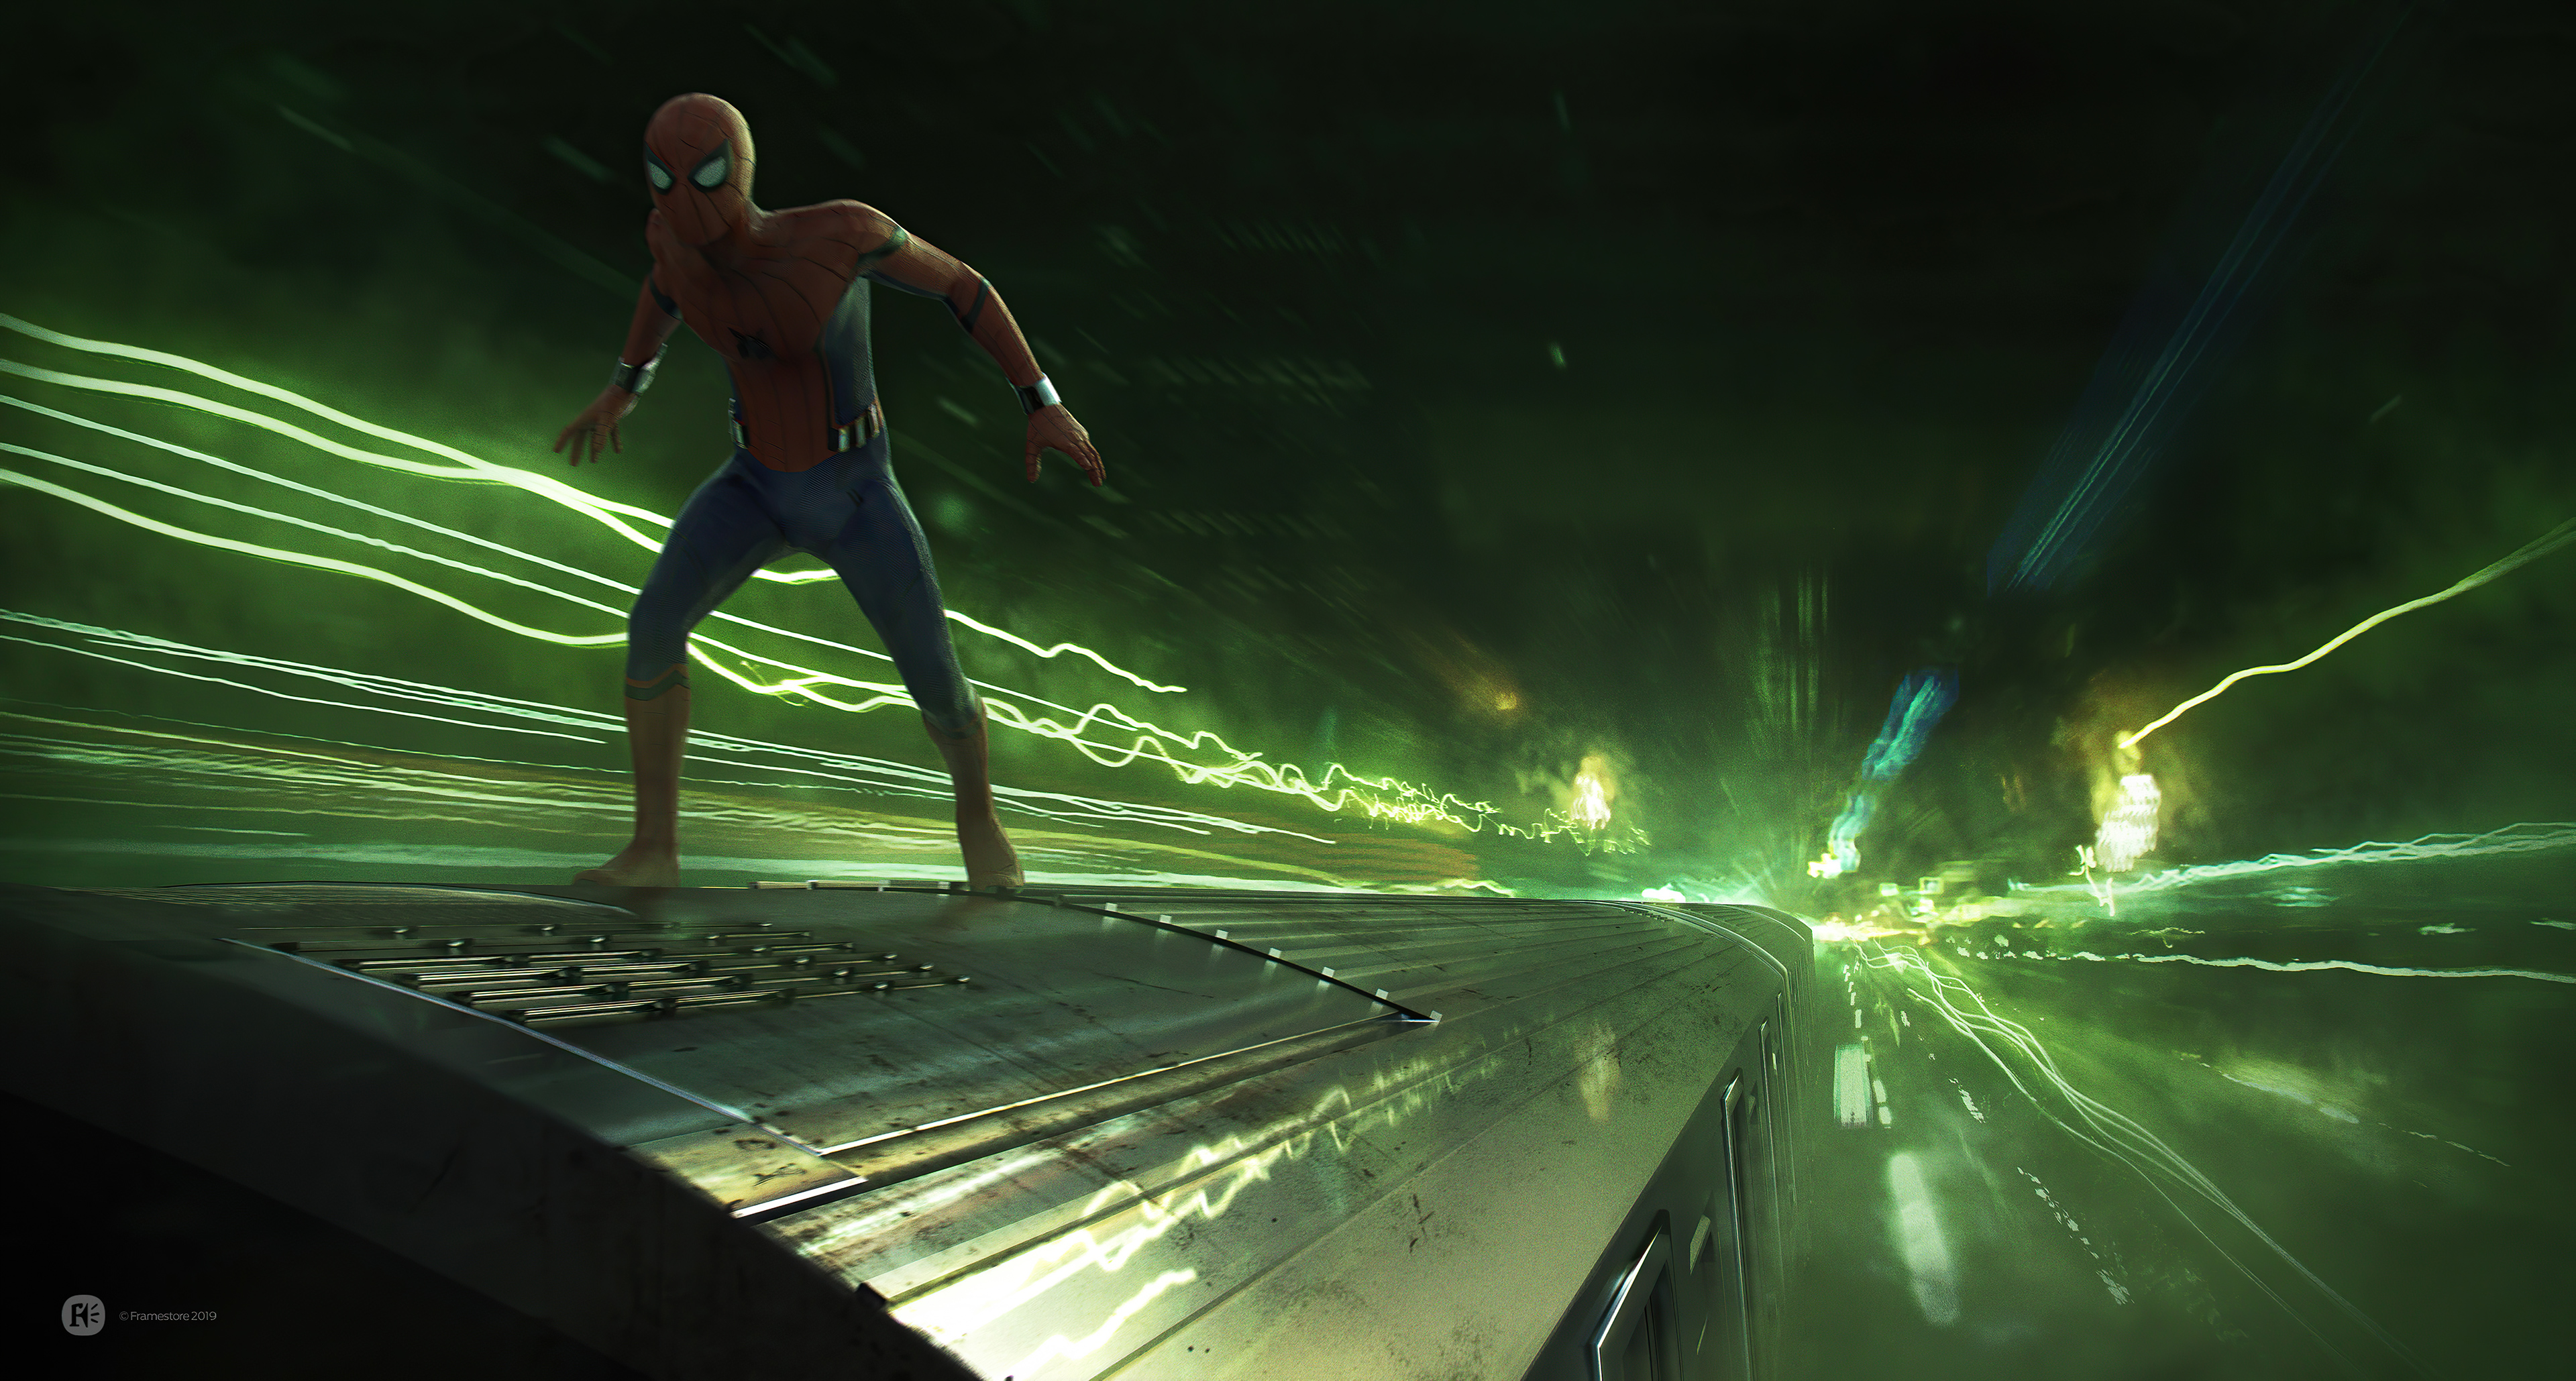 spider man far from home light speed train 4k 1616960422 - Spider Man Far From Home Light Speed Train 4k - Spider Man Far From Home Light Speed Train 4k wallpapers